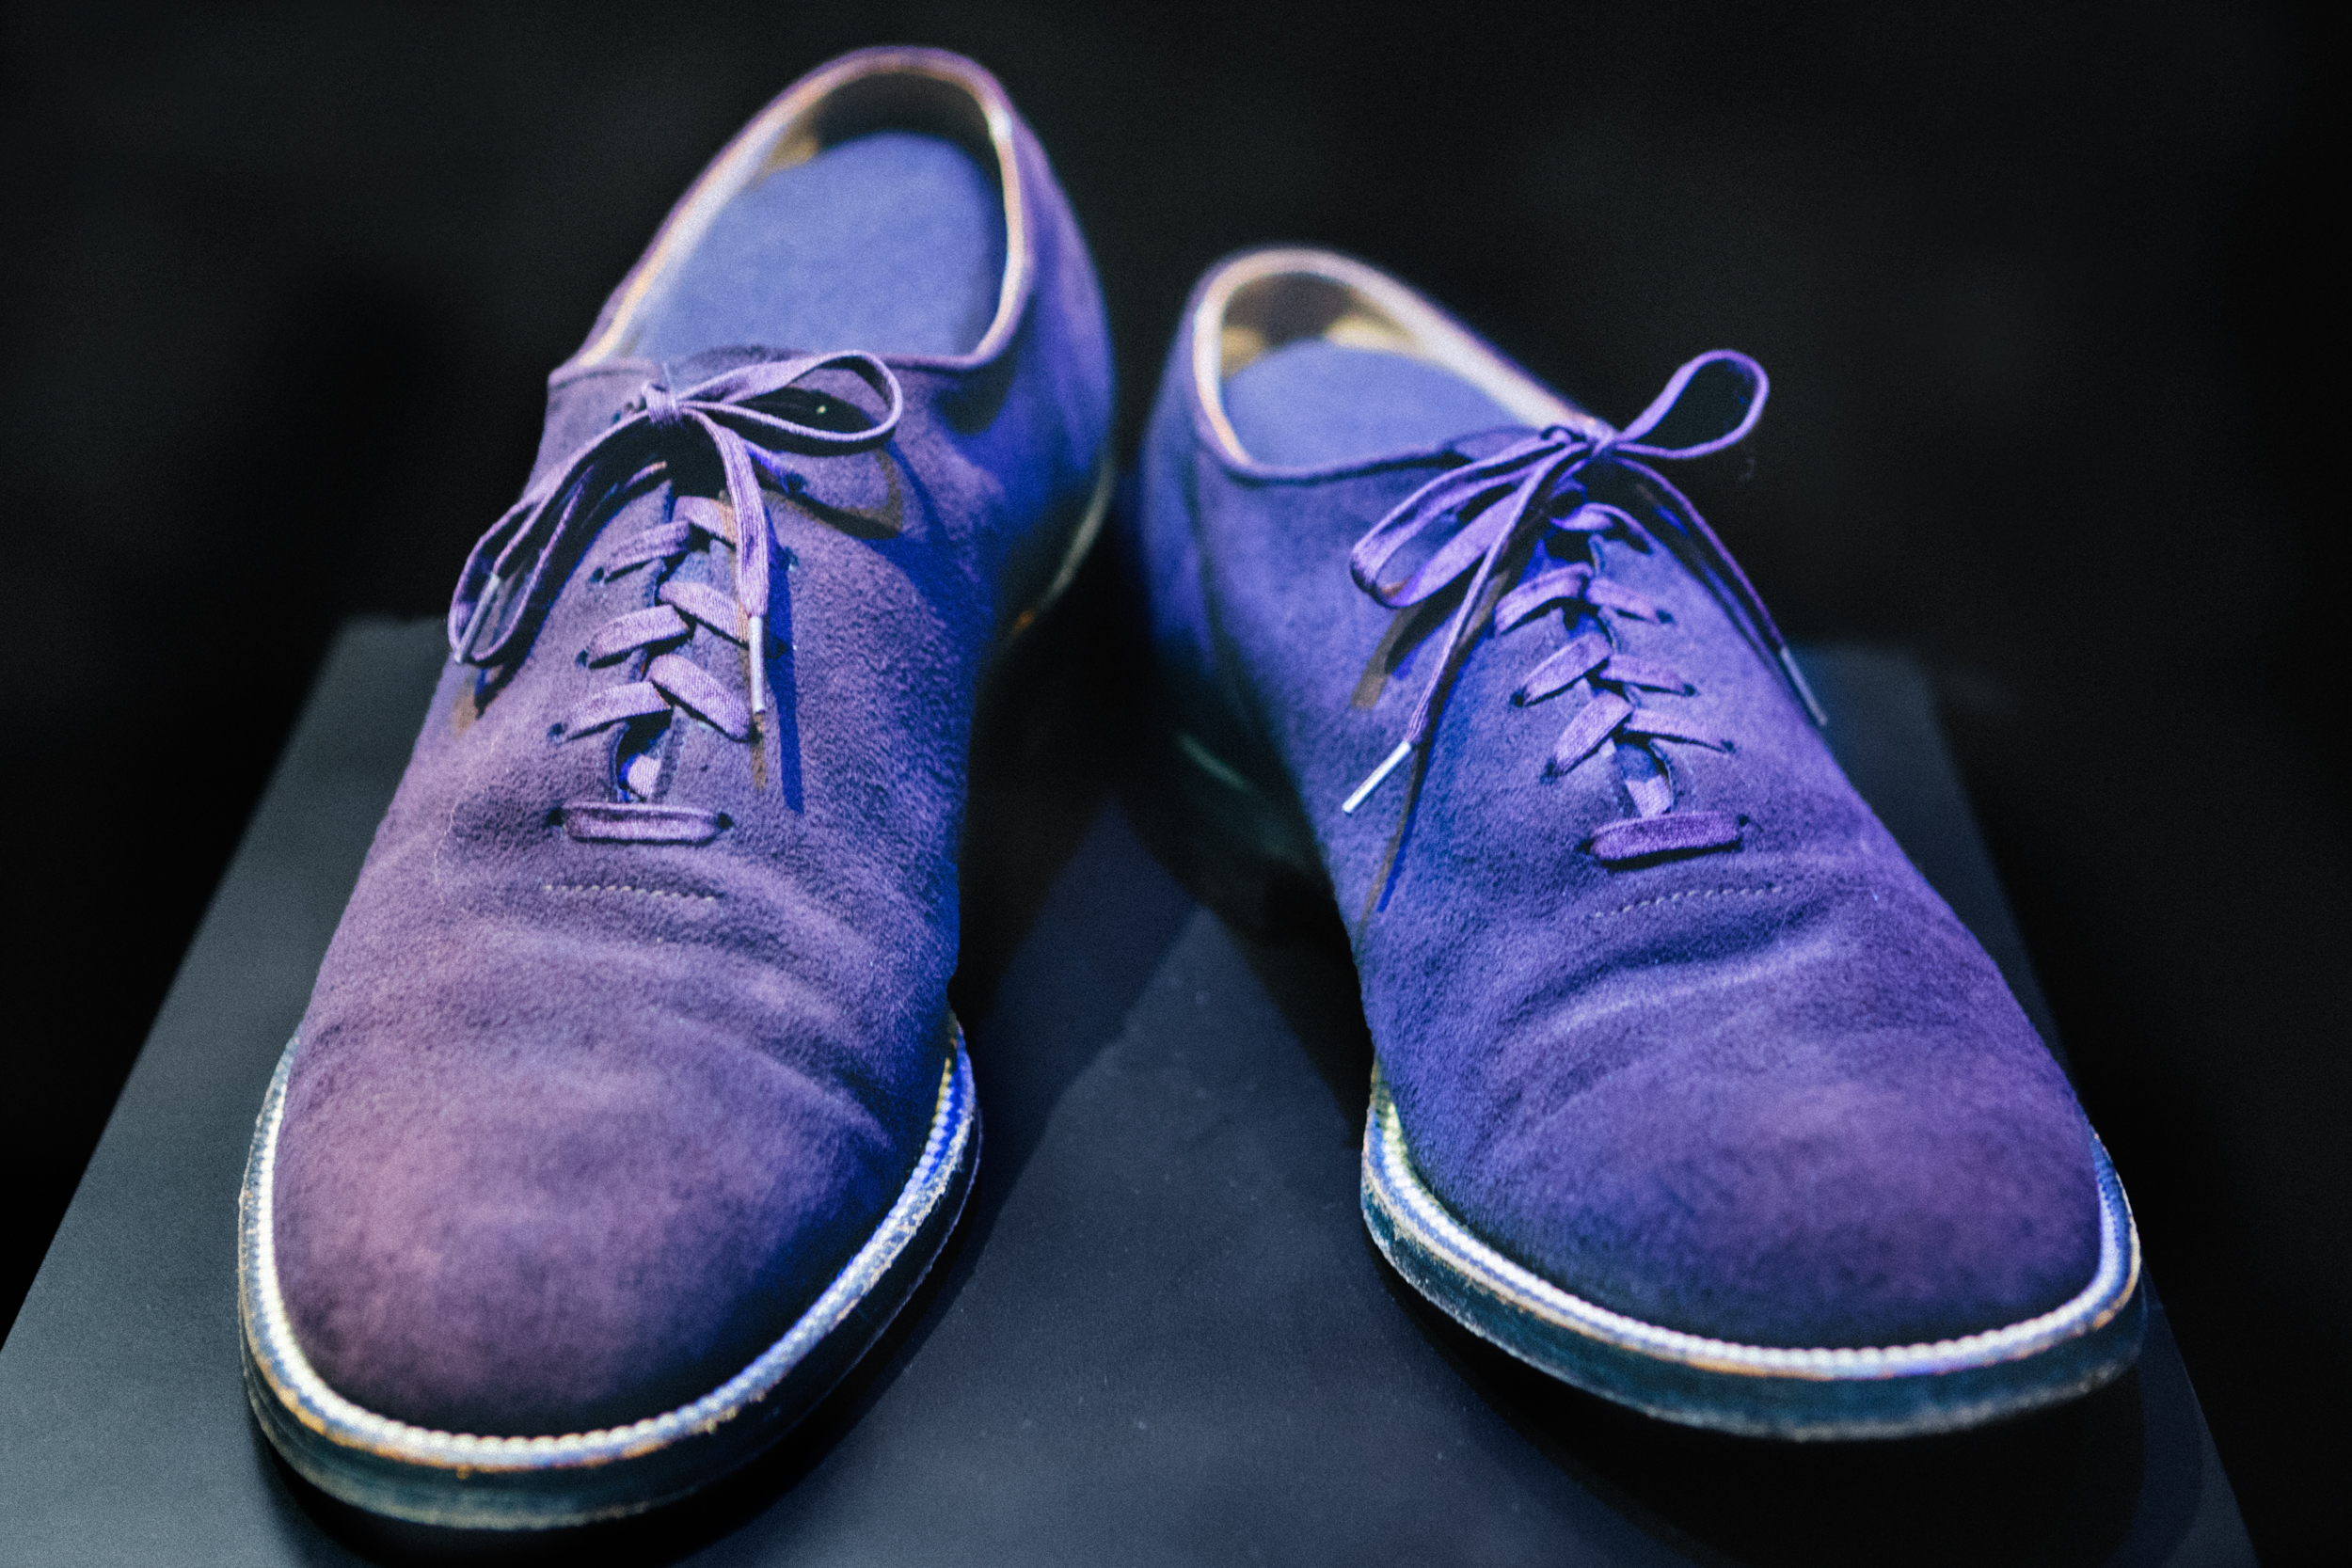 Carl Perkin's Blue Suede Shoes